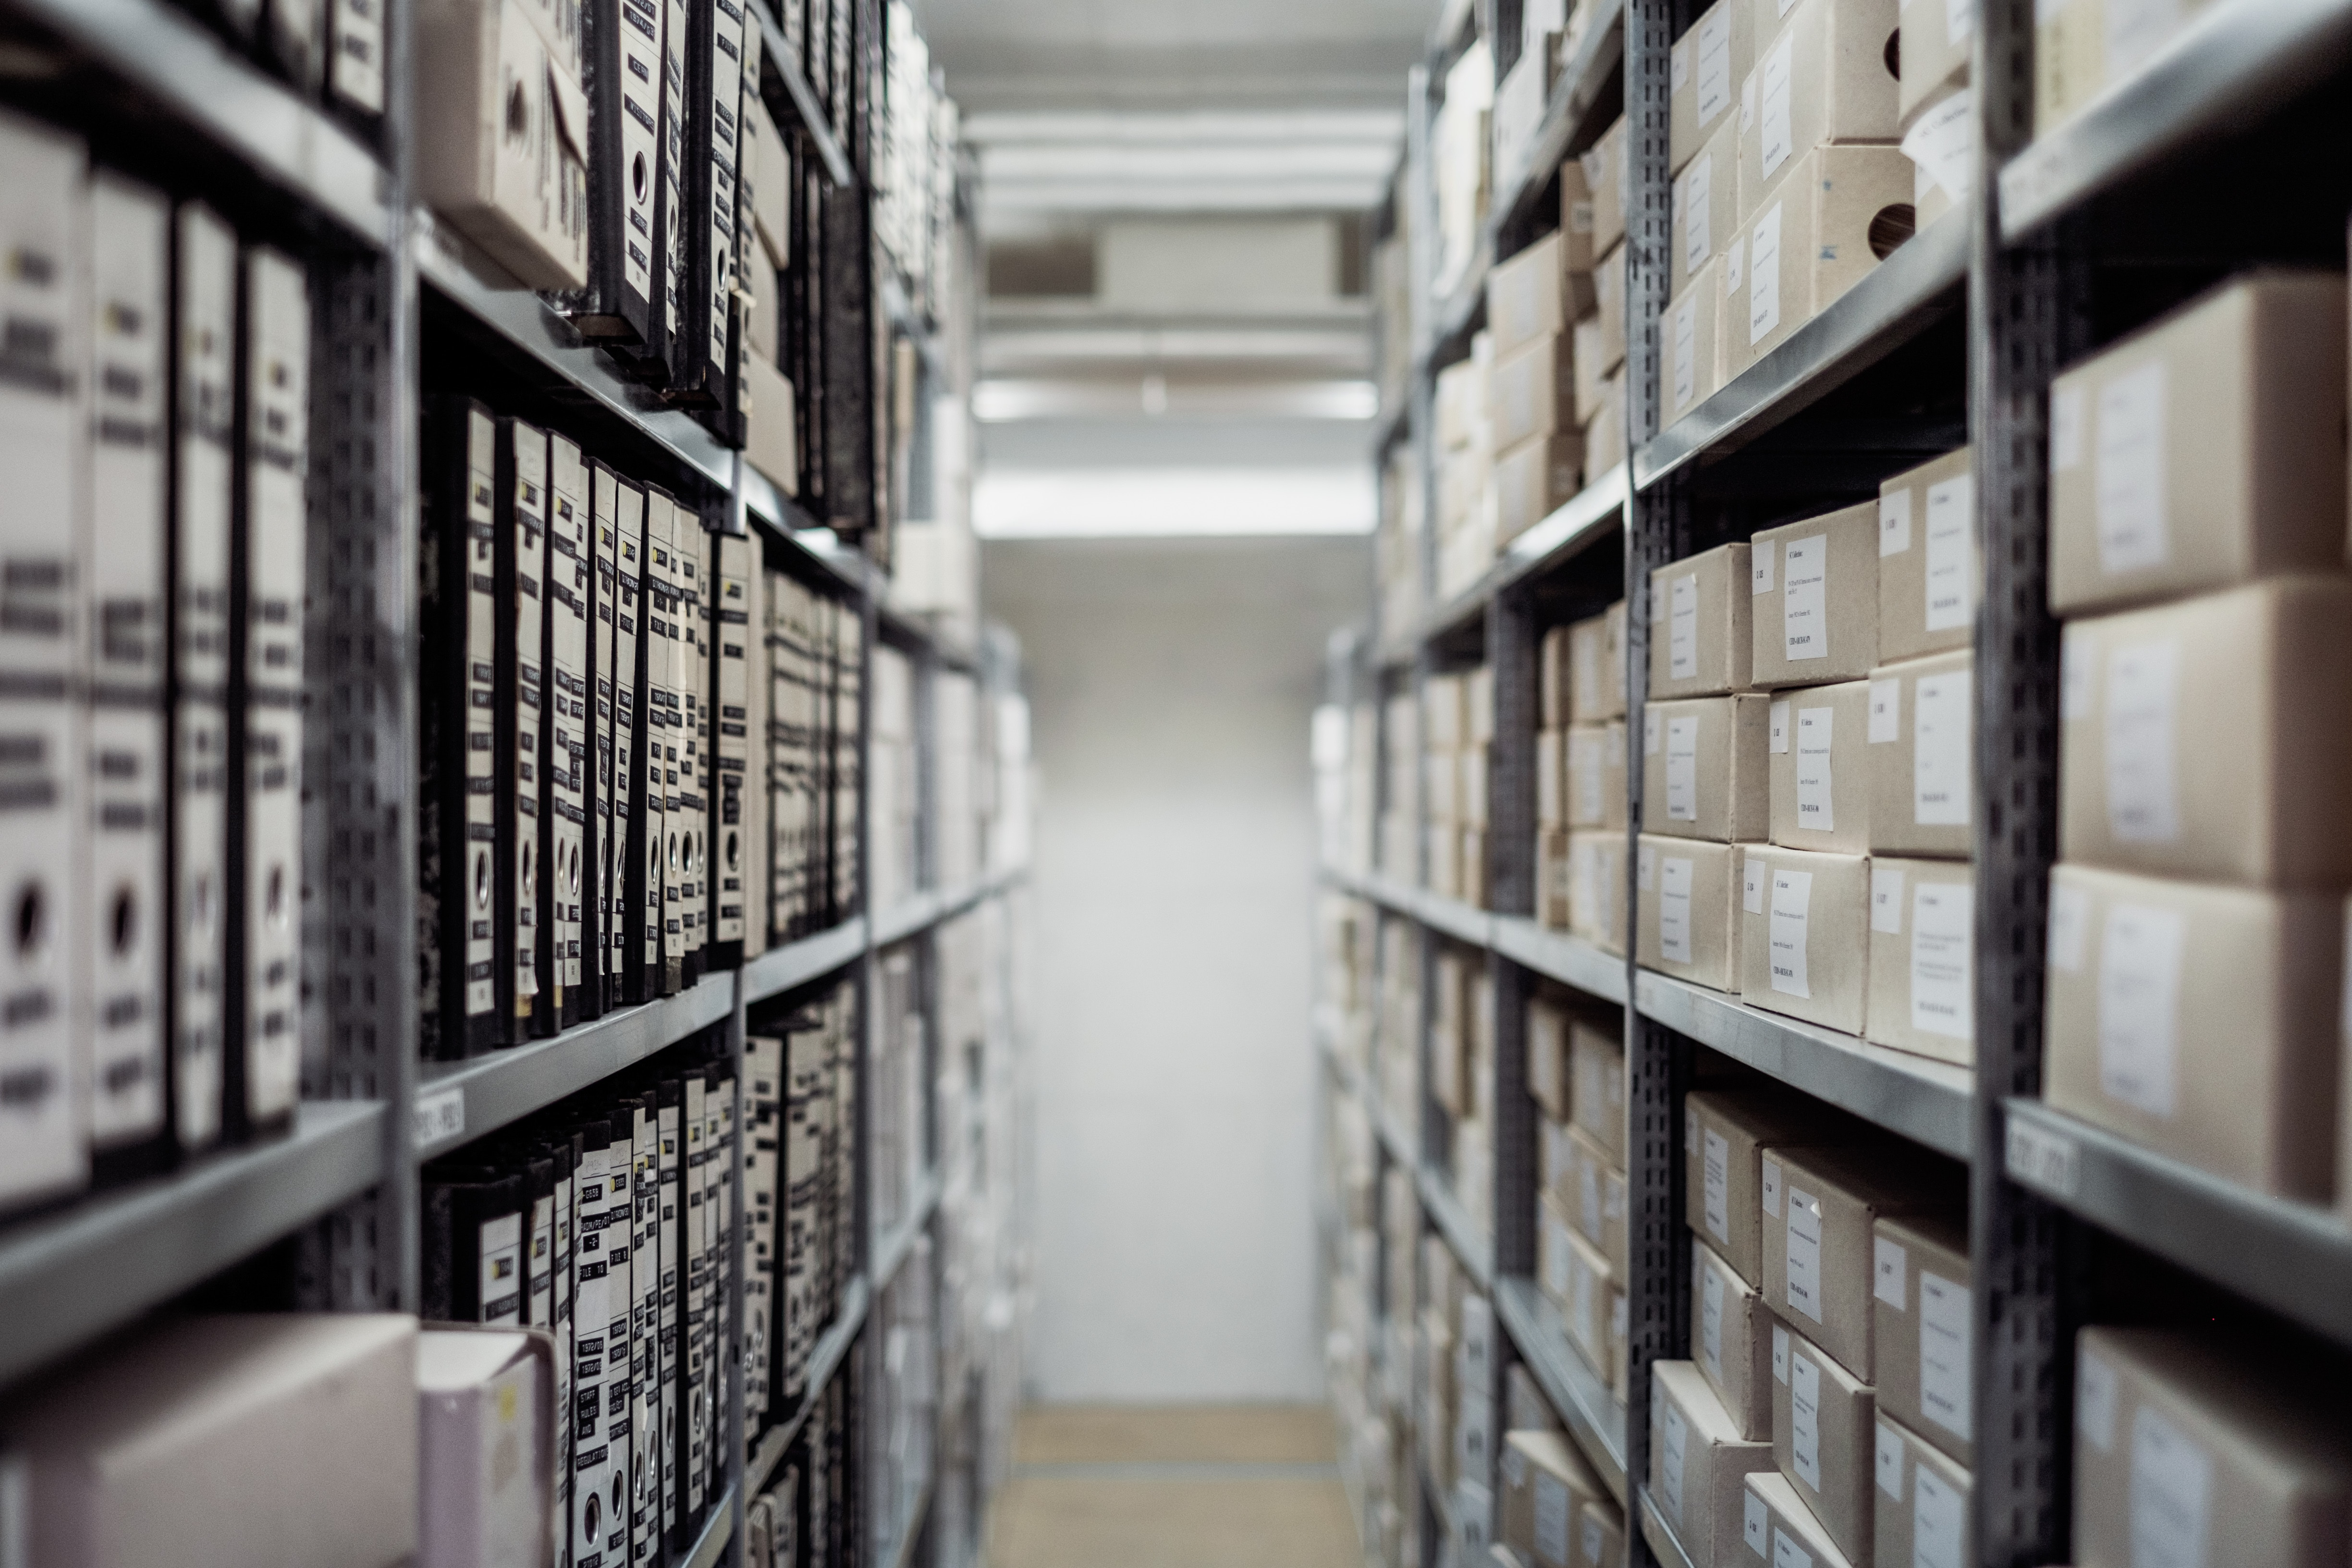 Minority Cultures and the Making of Cultural Heritage Archives in Finland